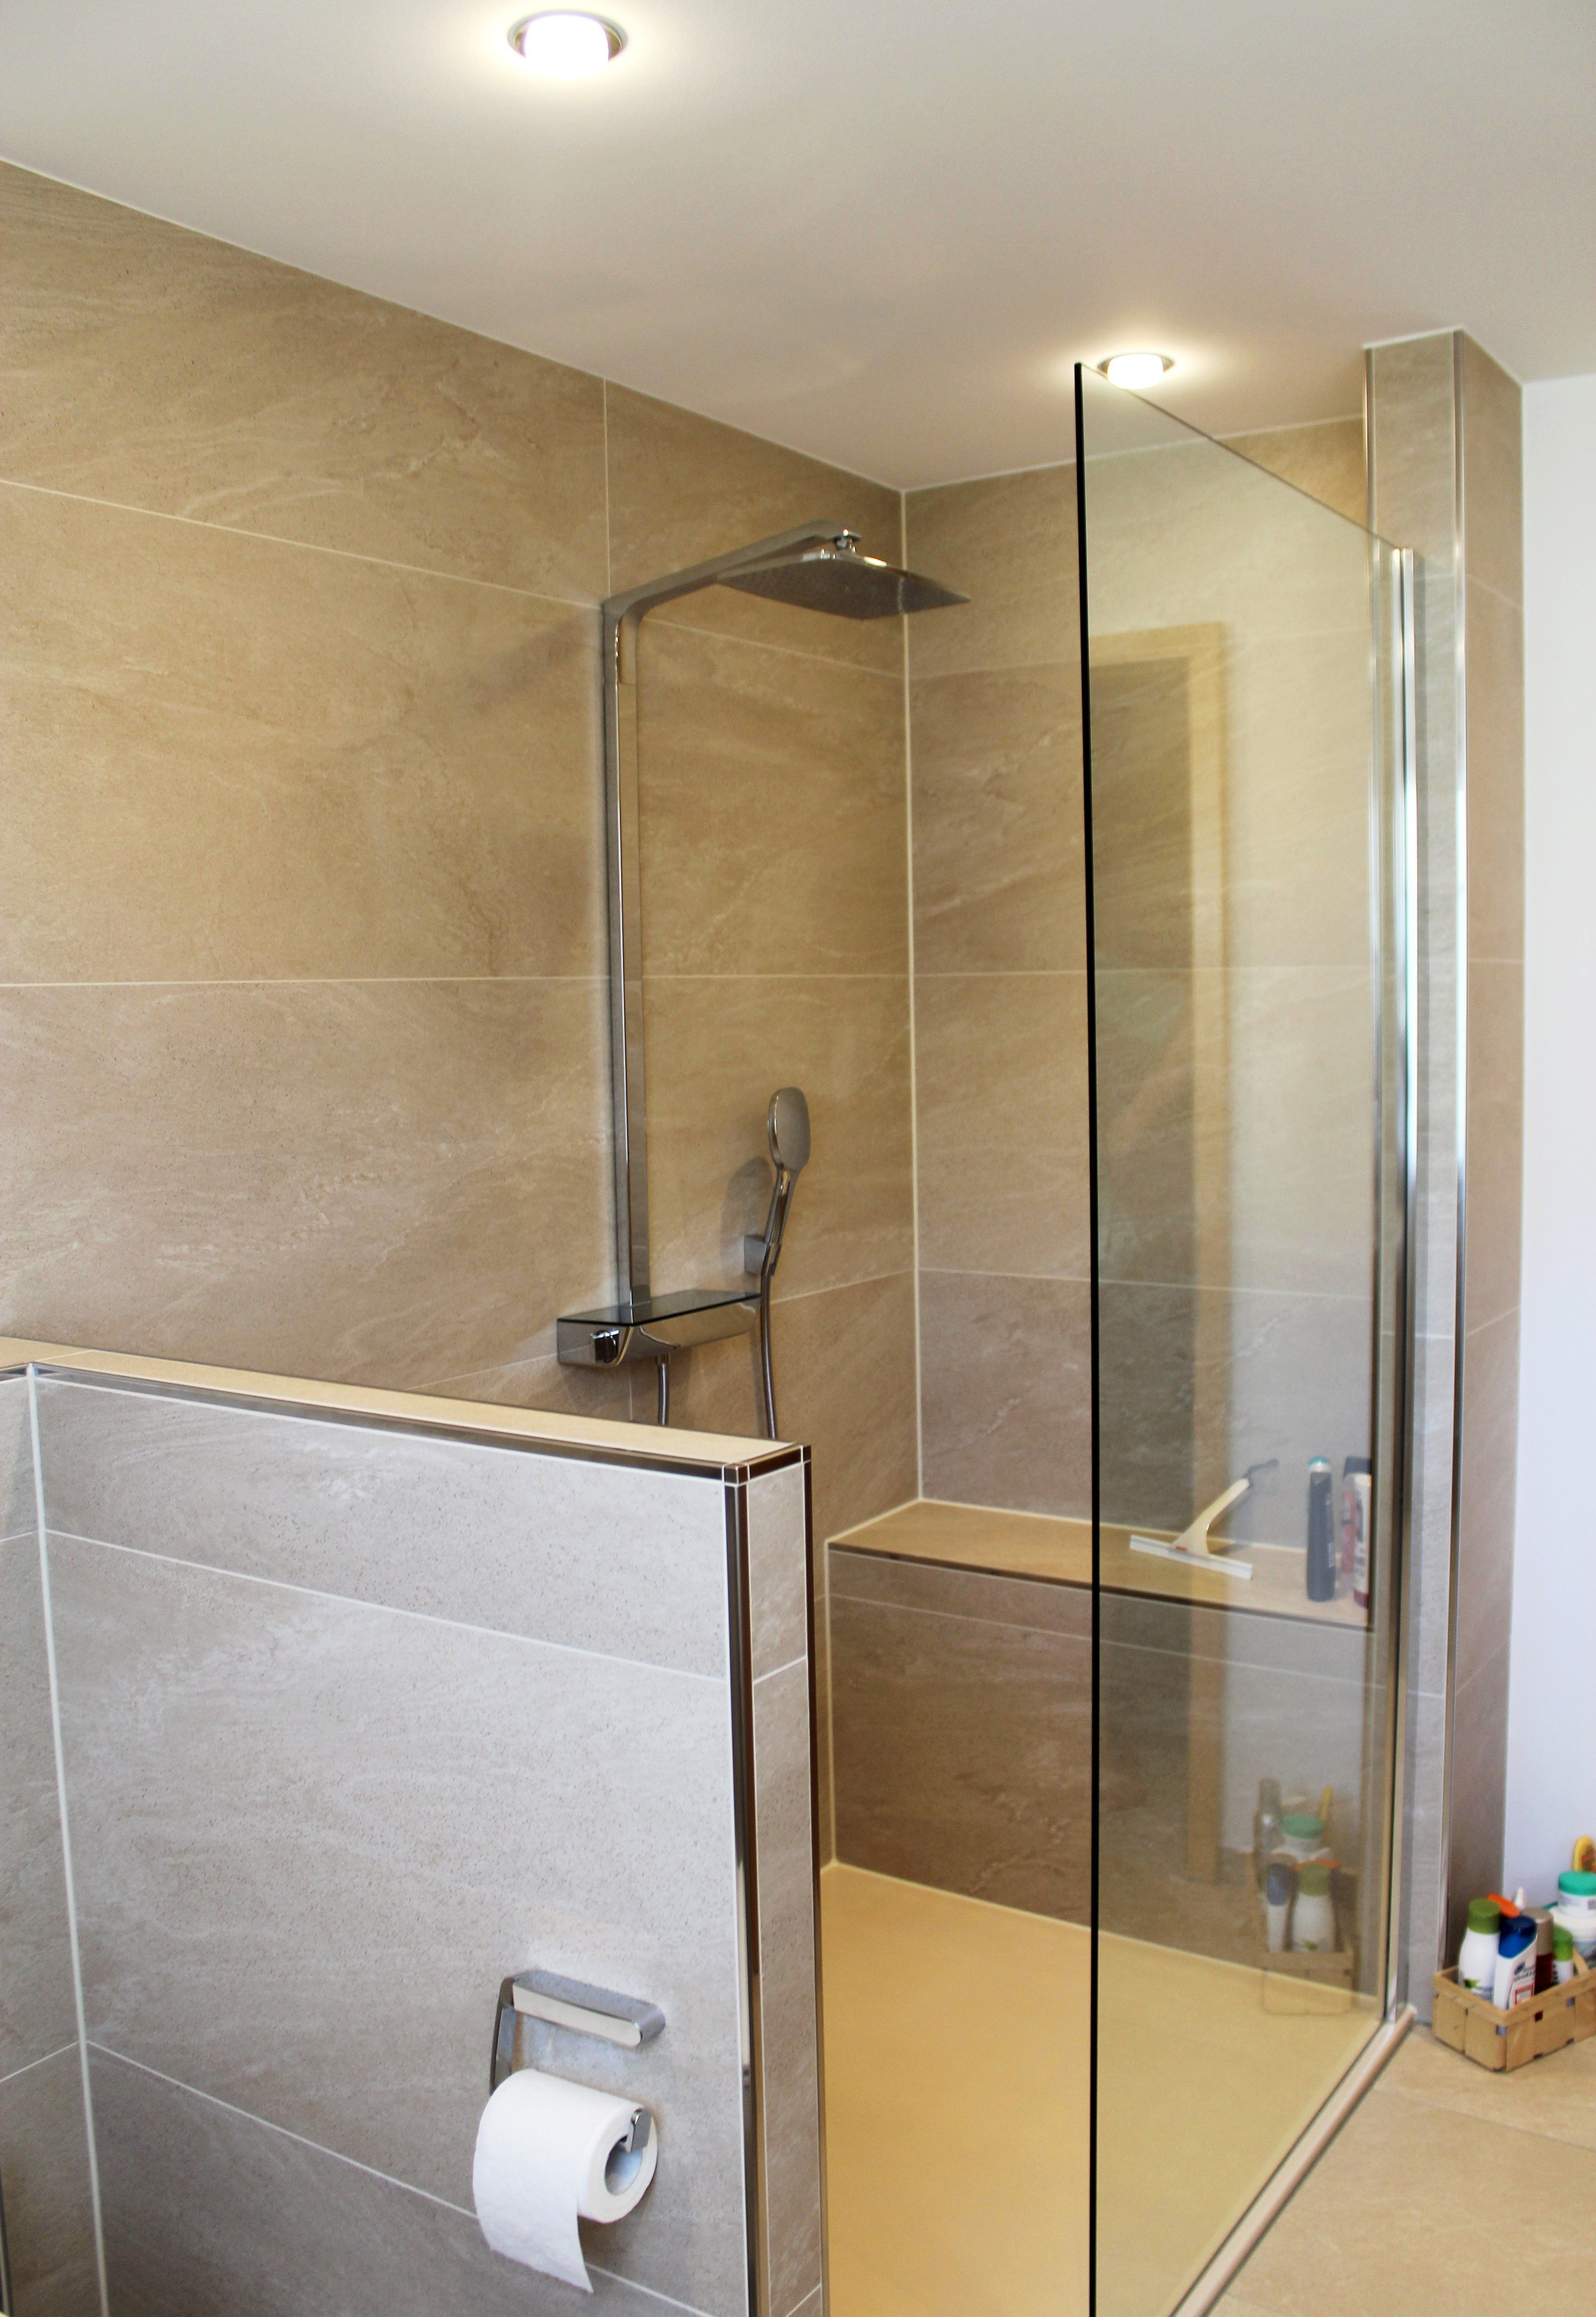 Here is a small bathroom style that stated that ...